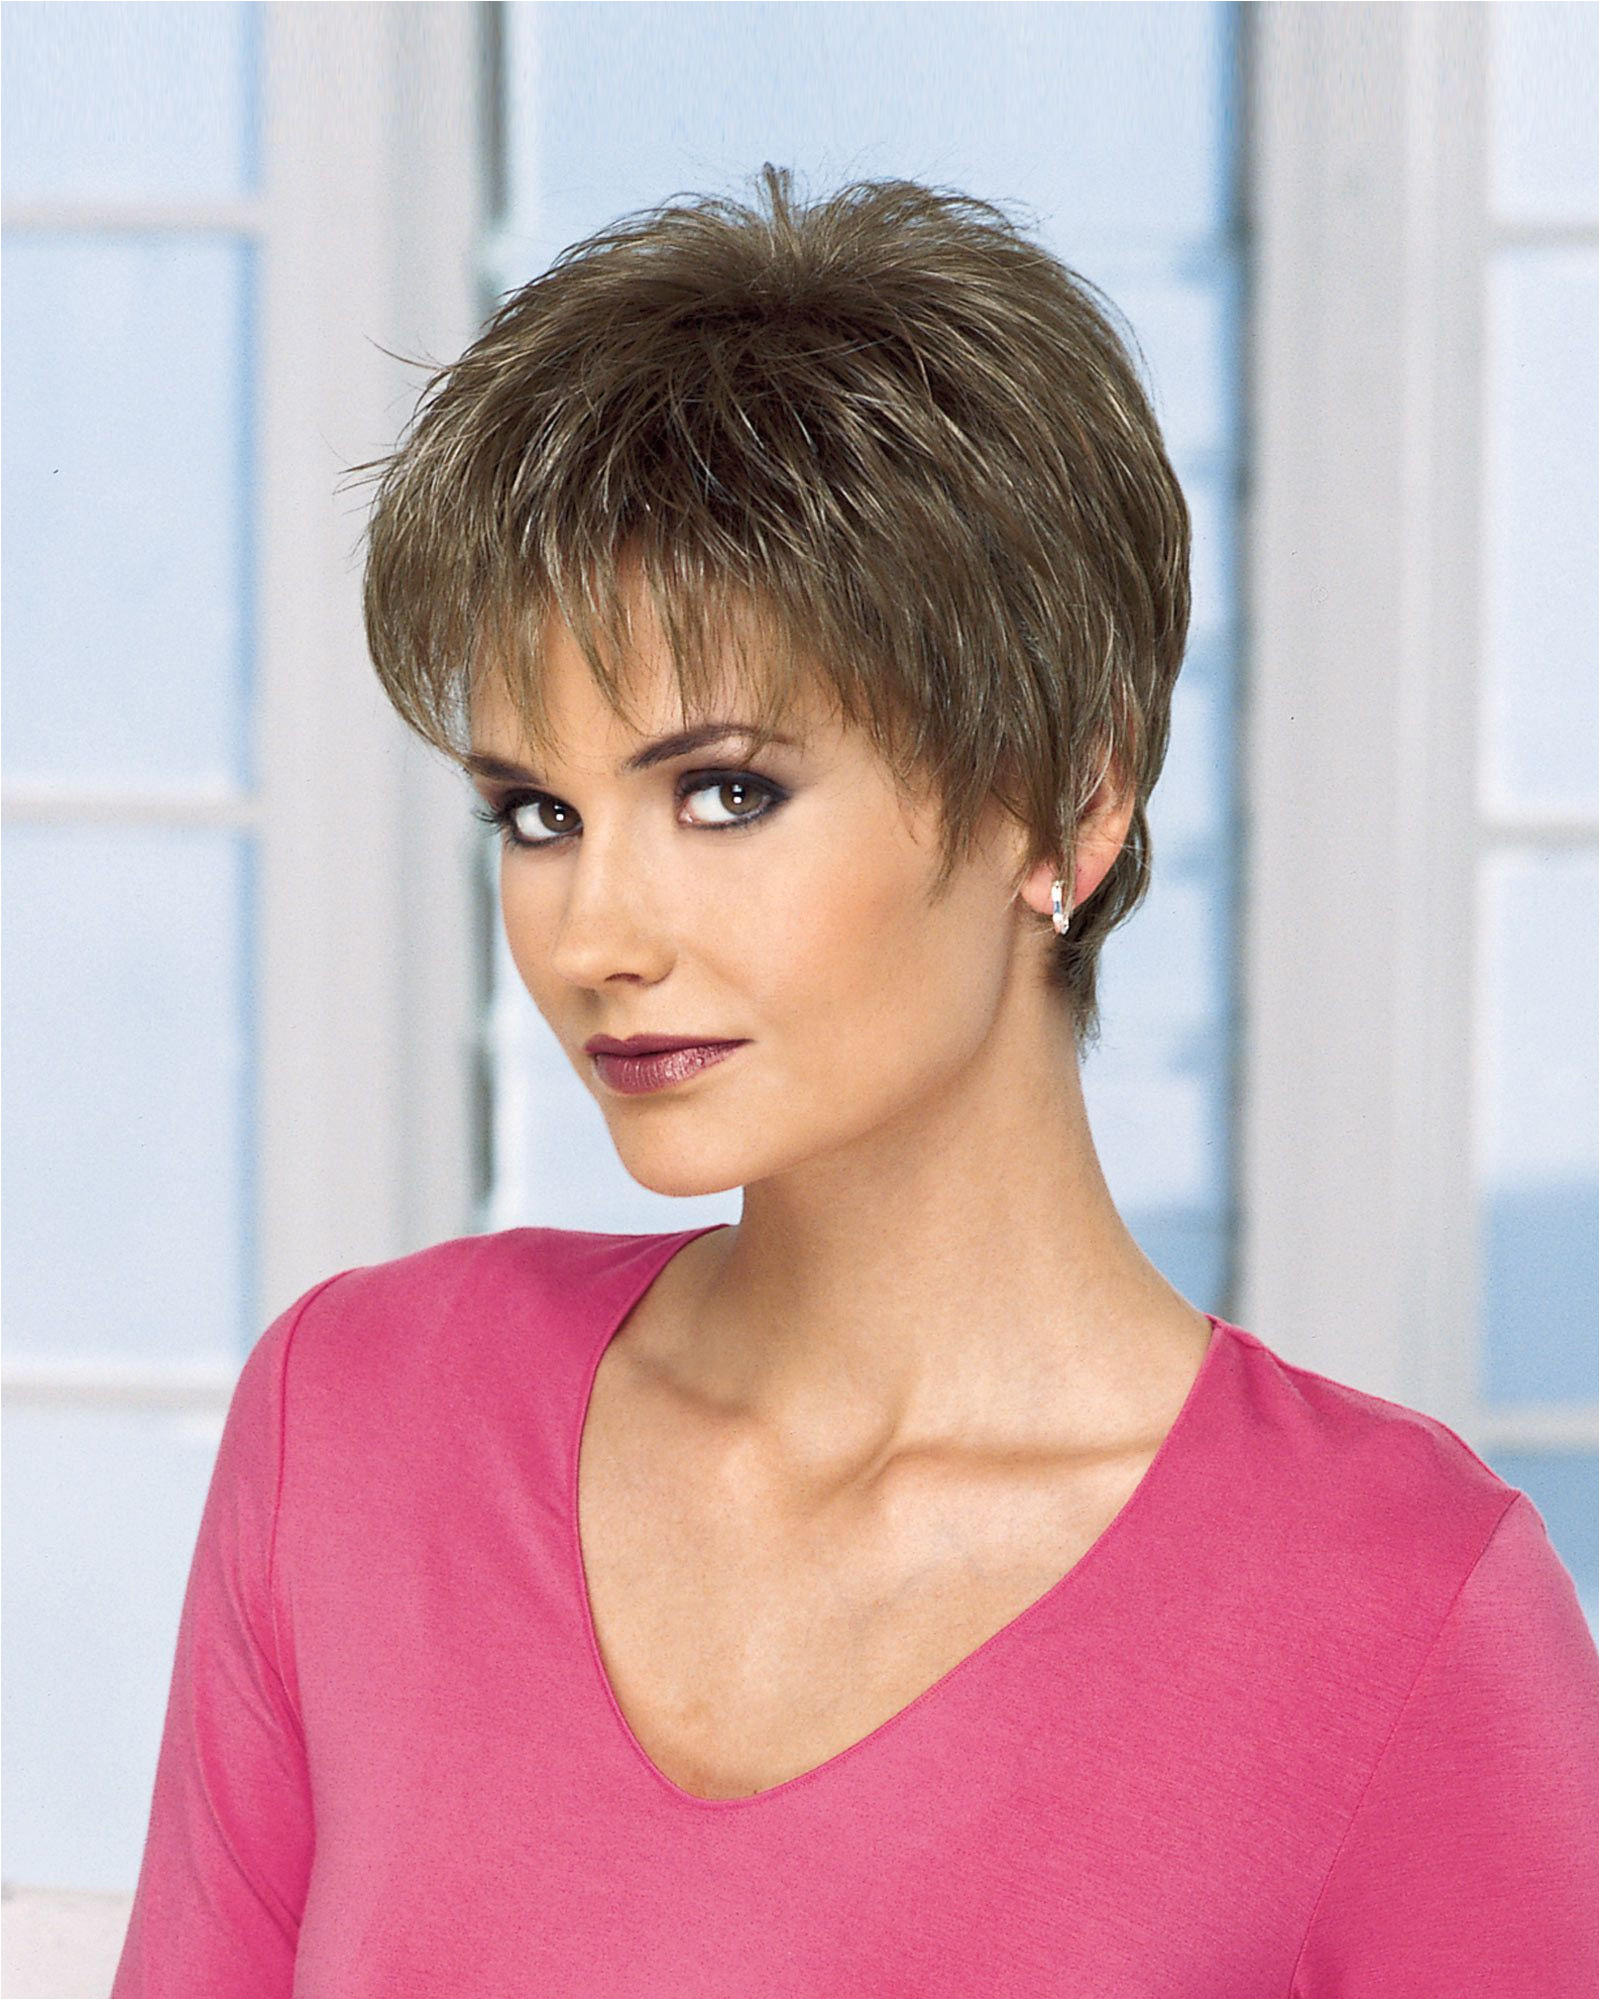 Gala by BT Classic is a short easy to wear cut Its textured bangs and tapered lengths create a modern look Be a knockout in this short cut